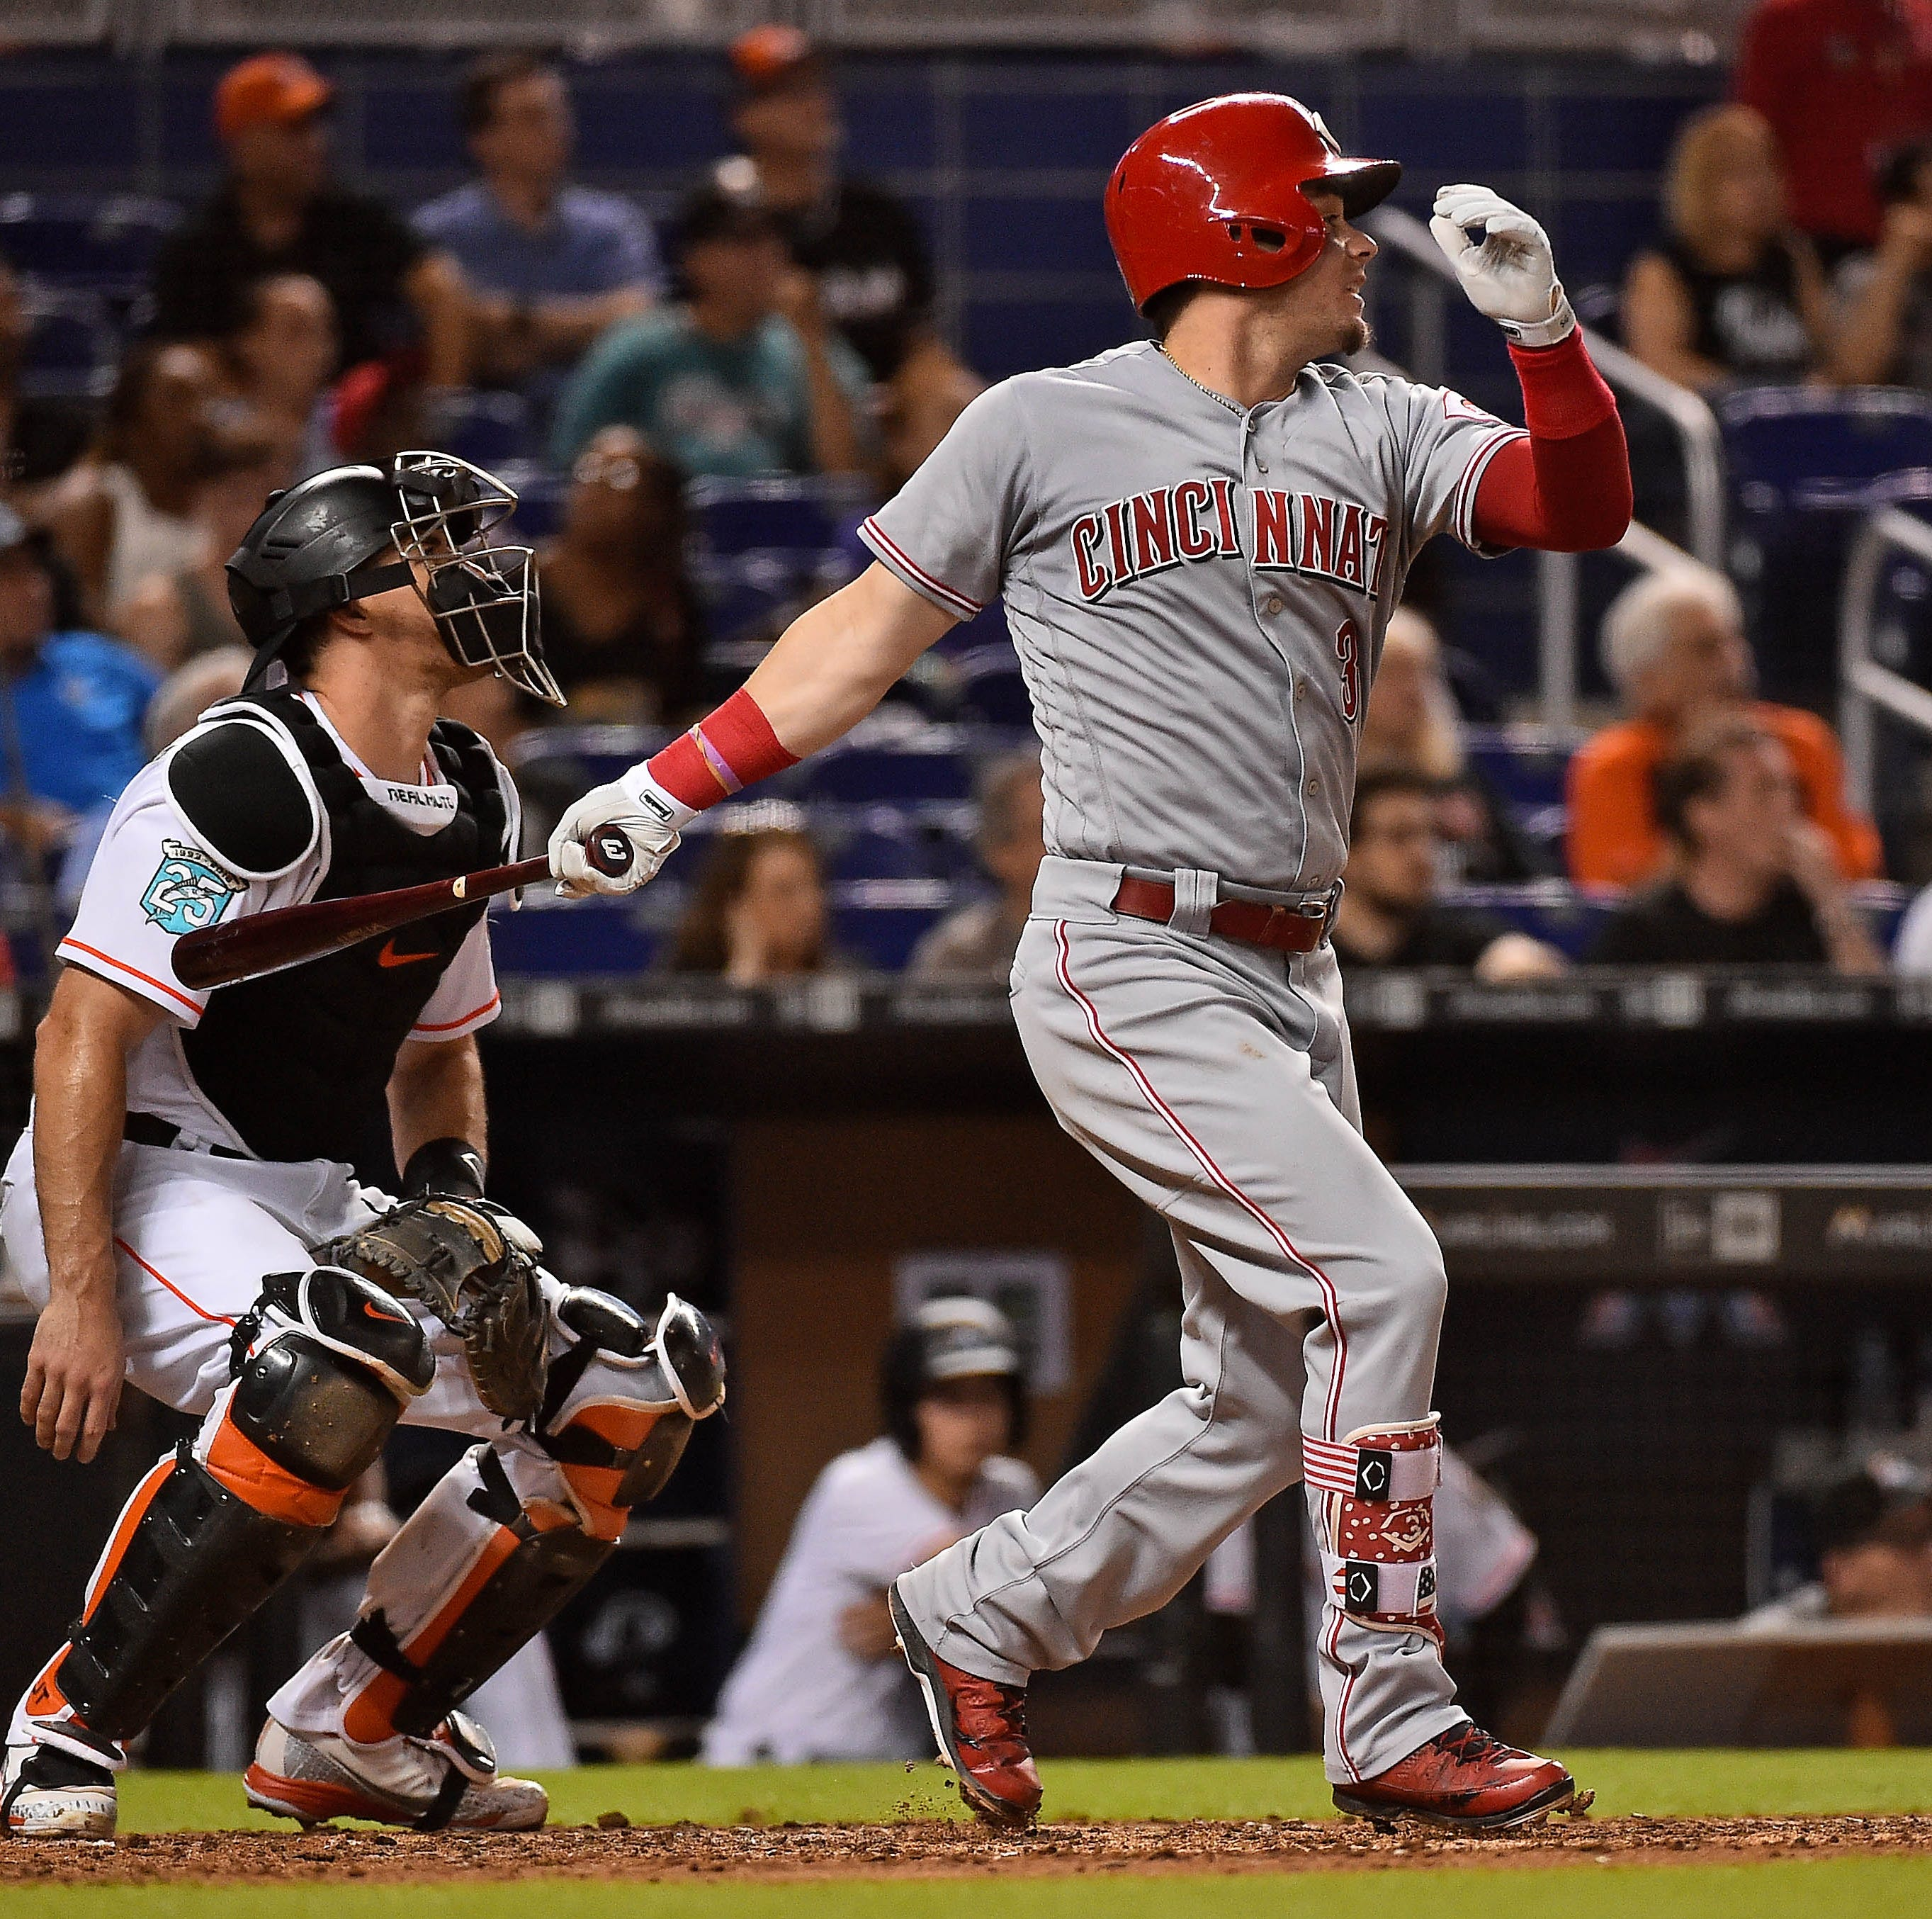 Paul Daugherty: Scooter Gennett's advanced metrics vs. old-school baseball stats